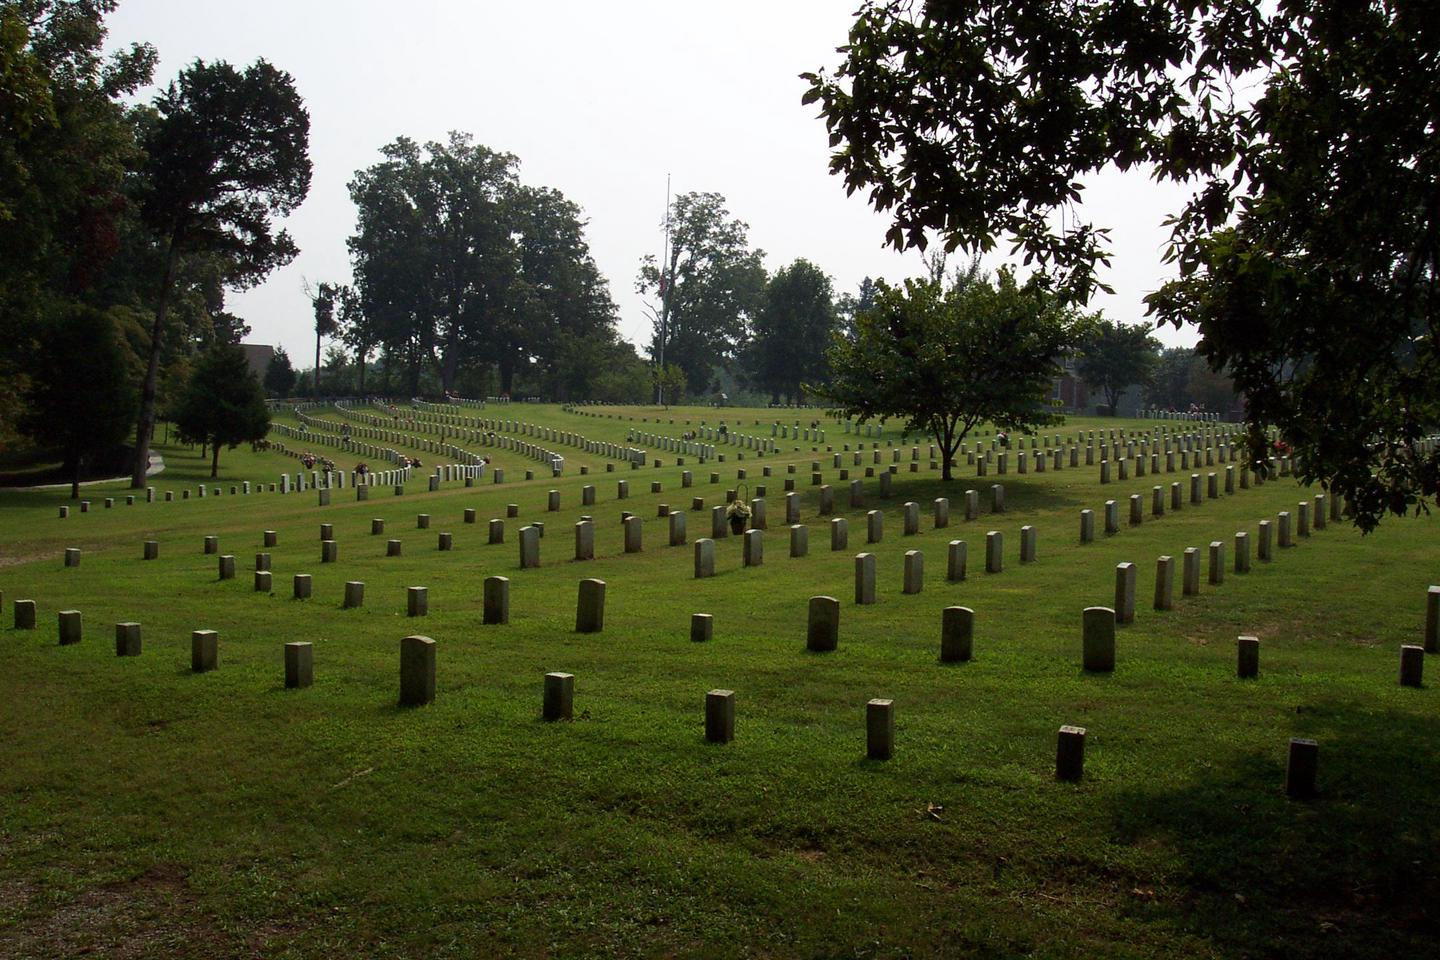 Fort Donelson National CemeteryFort Donelson National Cemetery: Final resting place for thousands of American Veterans